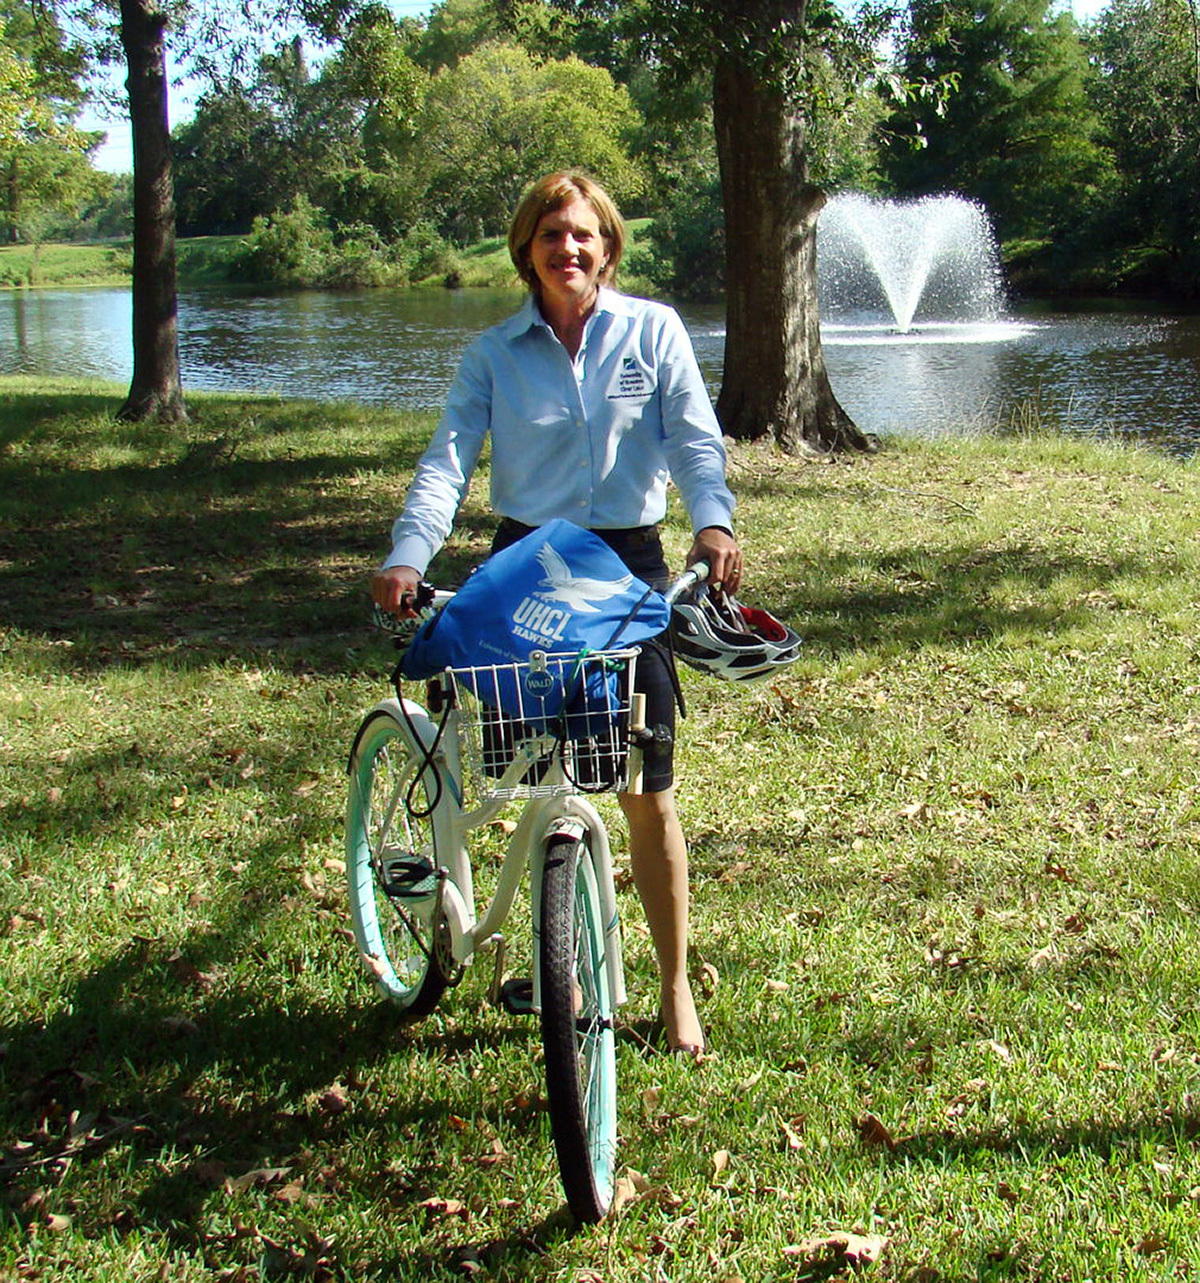 Photo: Karen Barbier, associate director of media relations, often rides her bike to work. Photo by The Signal reporter Kyle Upton.